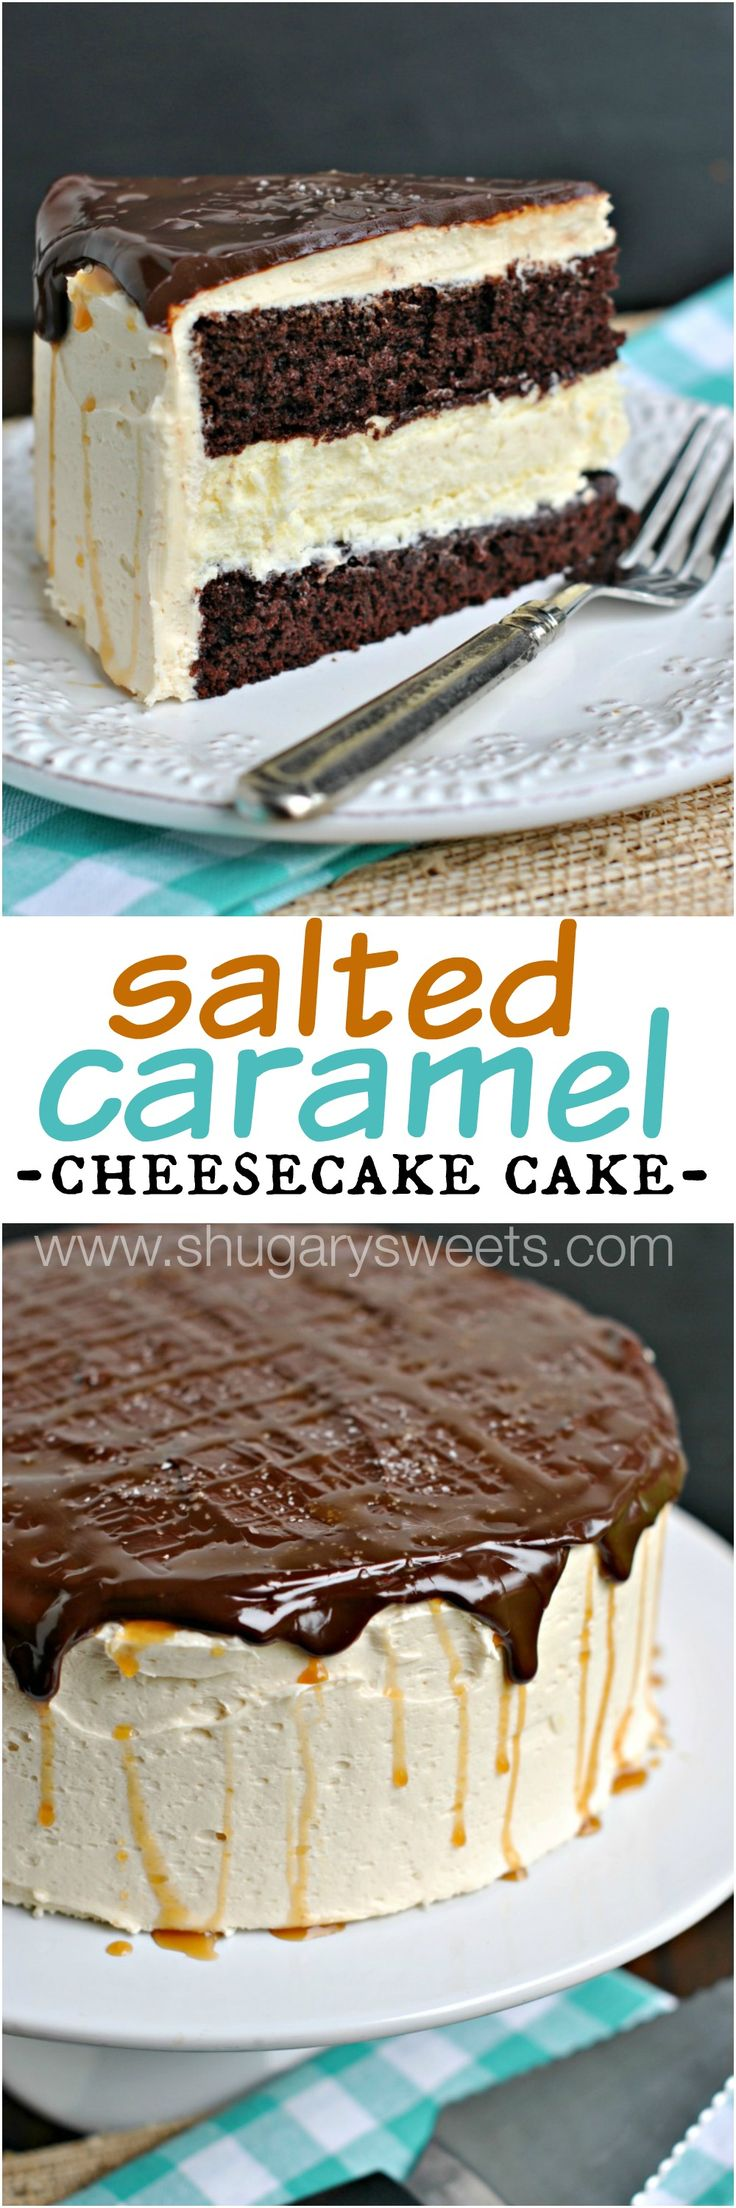 Salted Caramel Cheesecake Cake: delicious chocolate layered cake with a cheesecake center! Frosted with creamy salted caramel buttercream and chocolate ganache!